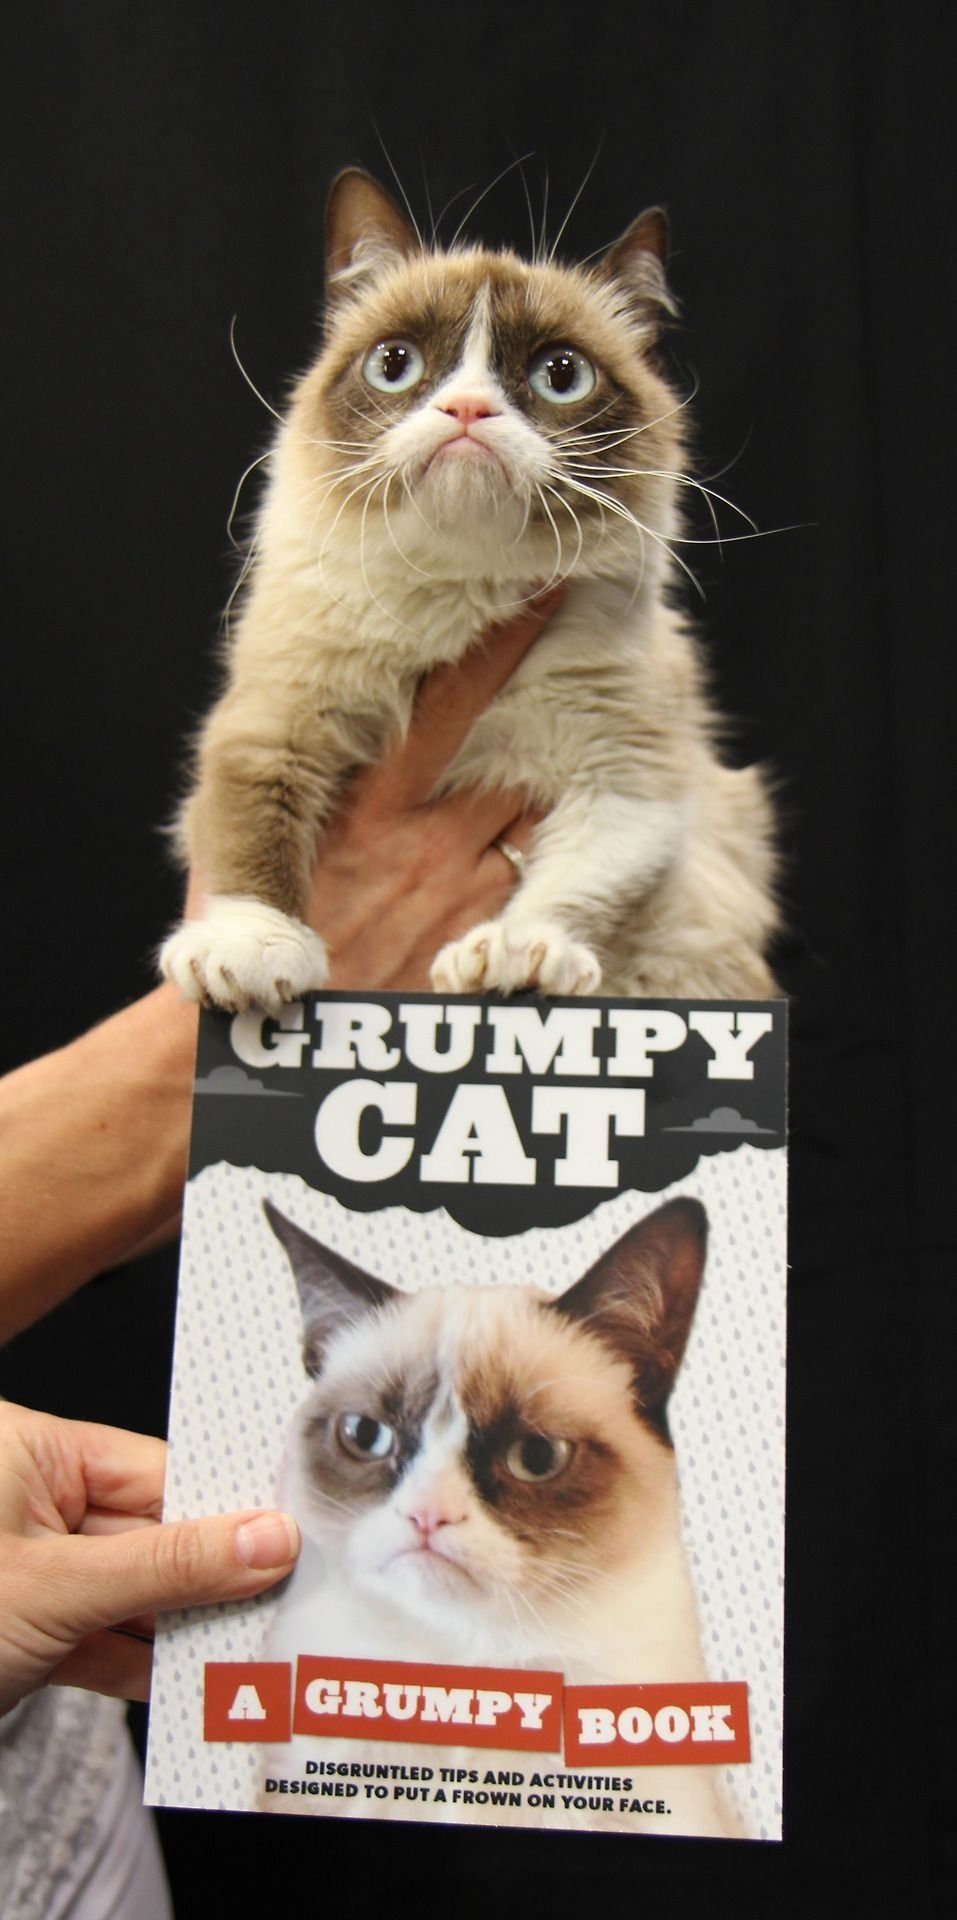 Tardar The Grumpy Cat Making Another Debut I Can T Wait For This Book It Is Going To Be Filled With Cuteness 3 Grumpy Cat Grumpy Cat Humor Grumpy Cat Book